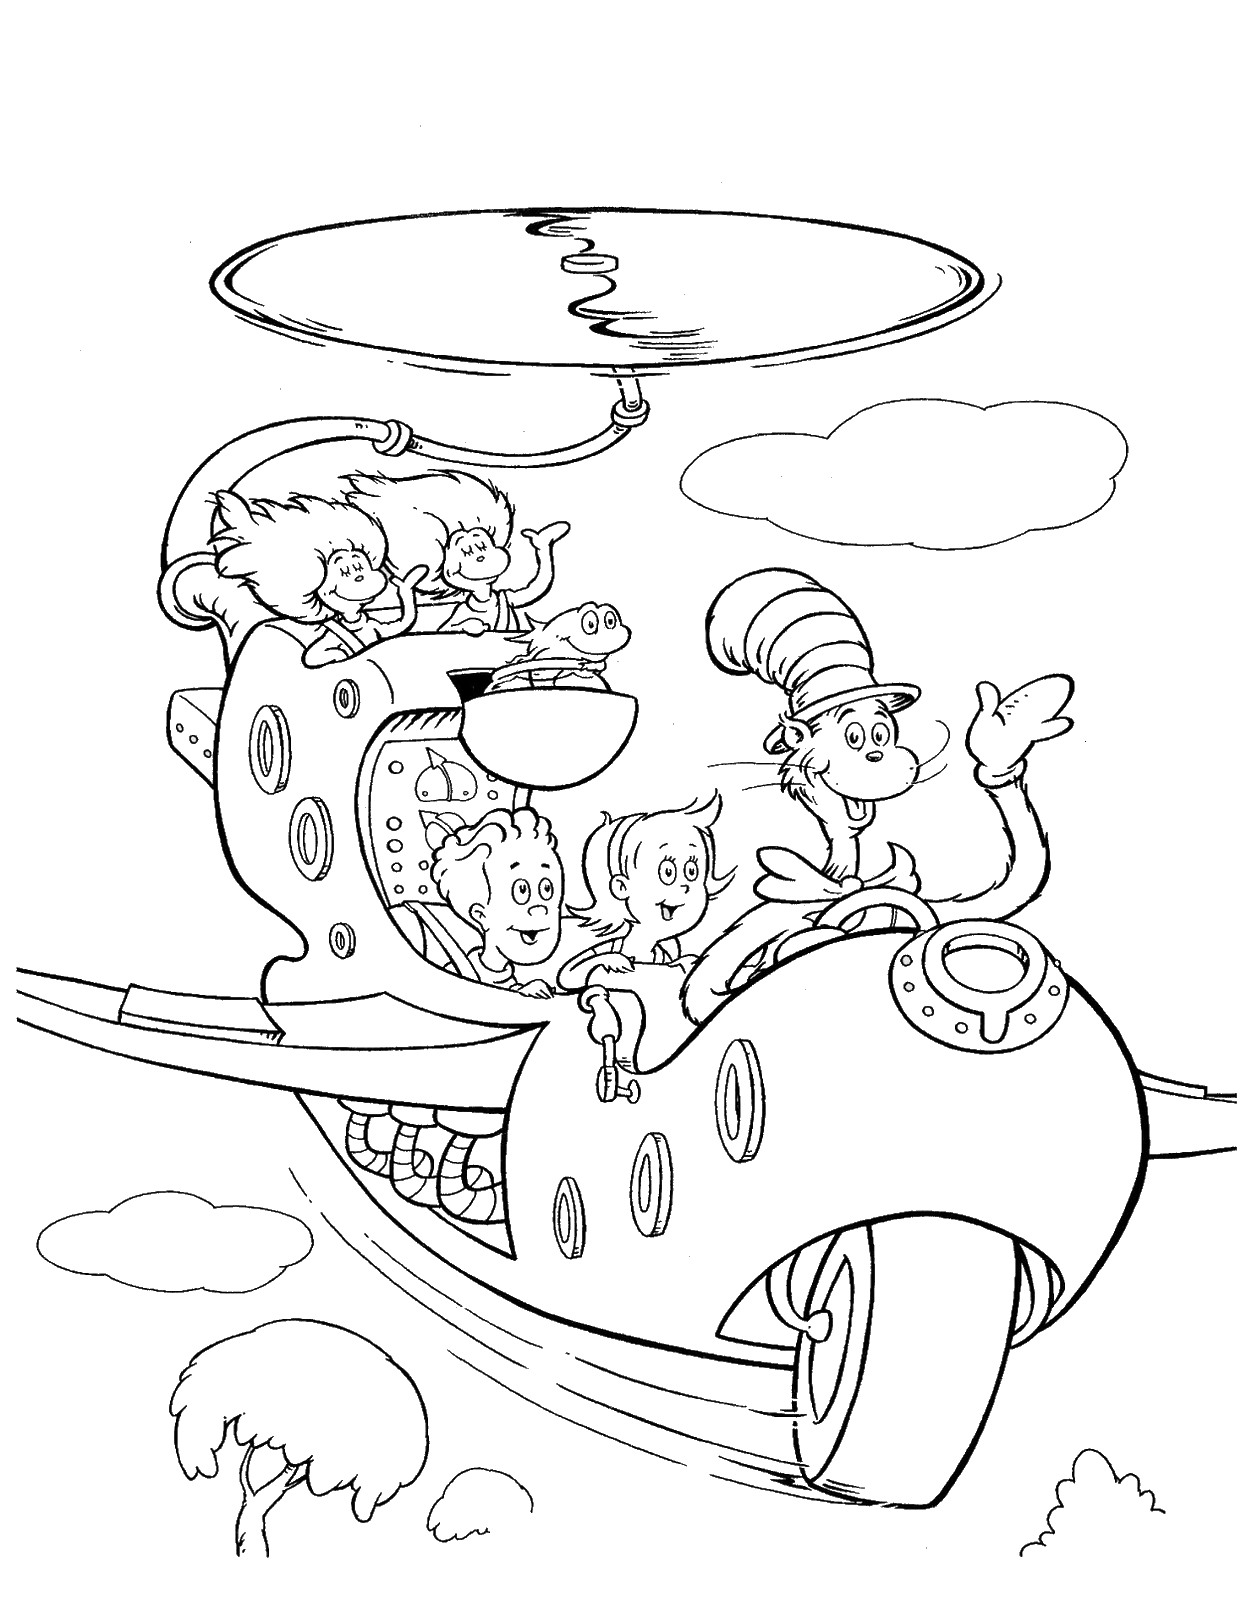 coloring pages cat in the hat fun coloring pages cat in the hat coloring pages dr seuss the hat in coloring cat pages